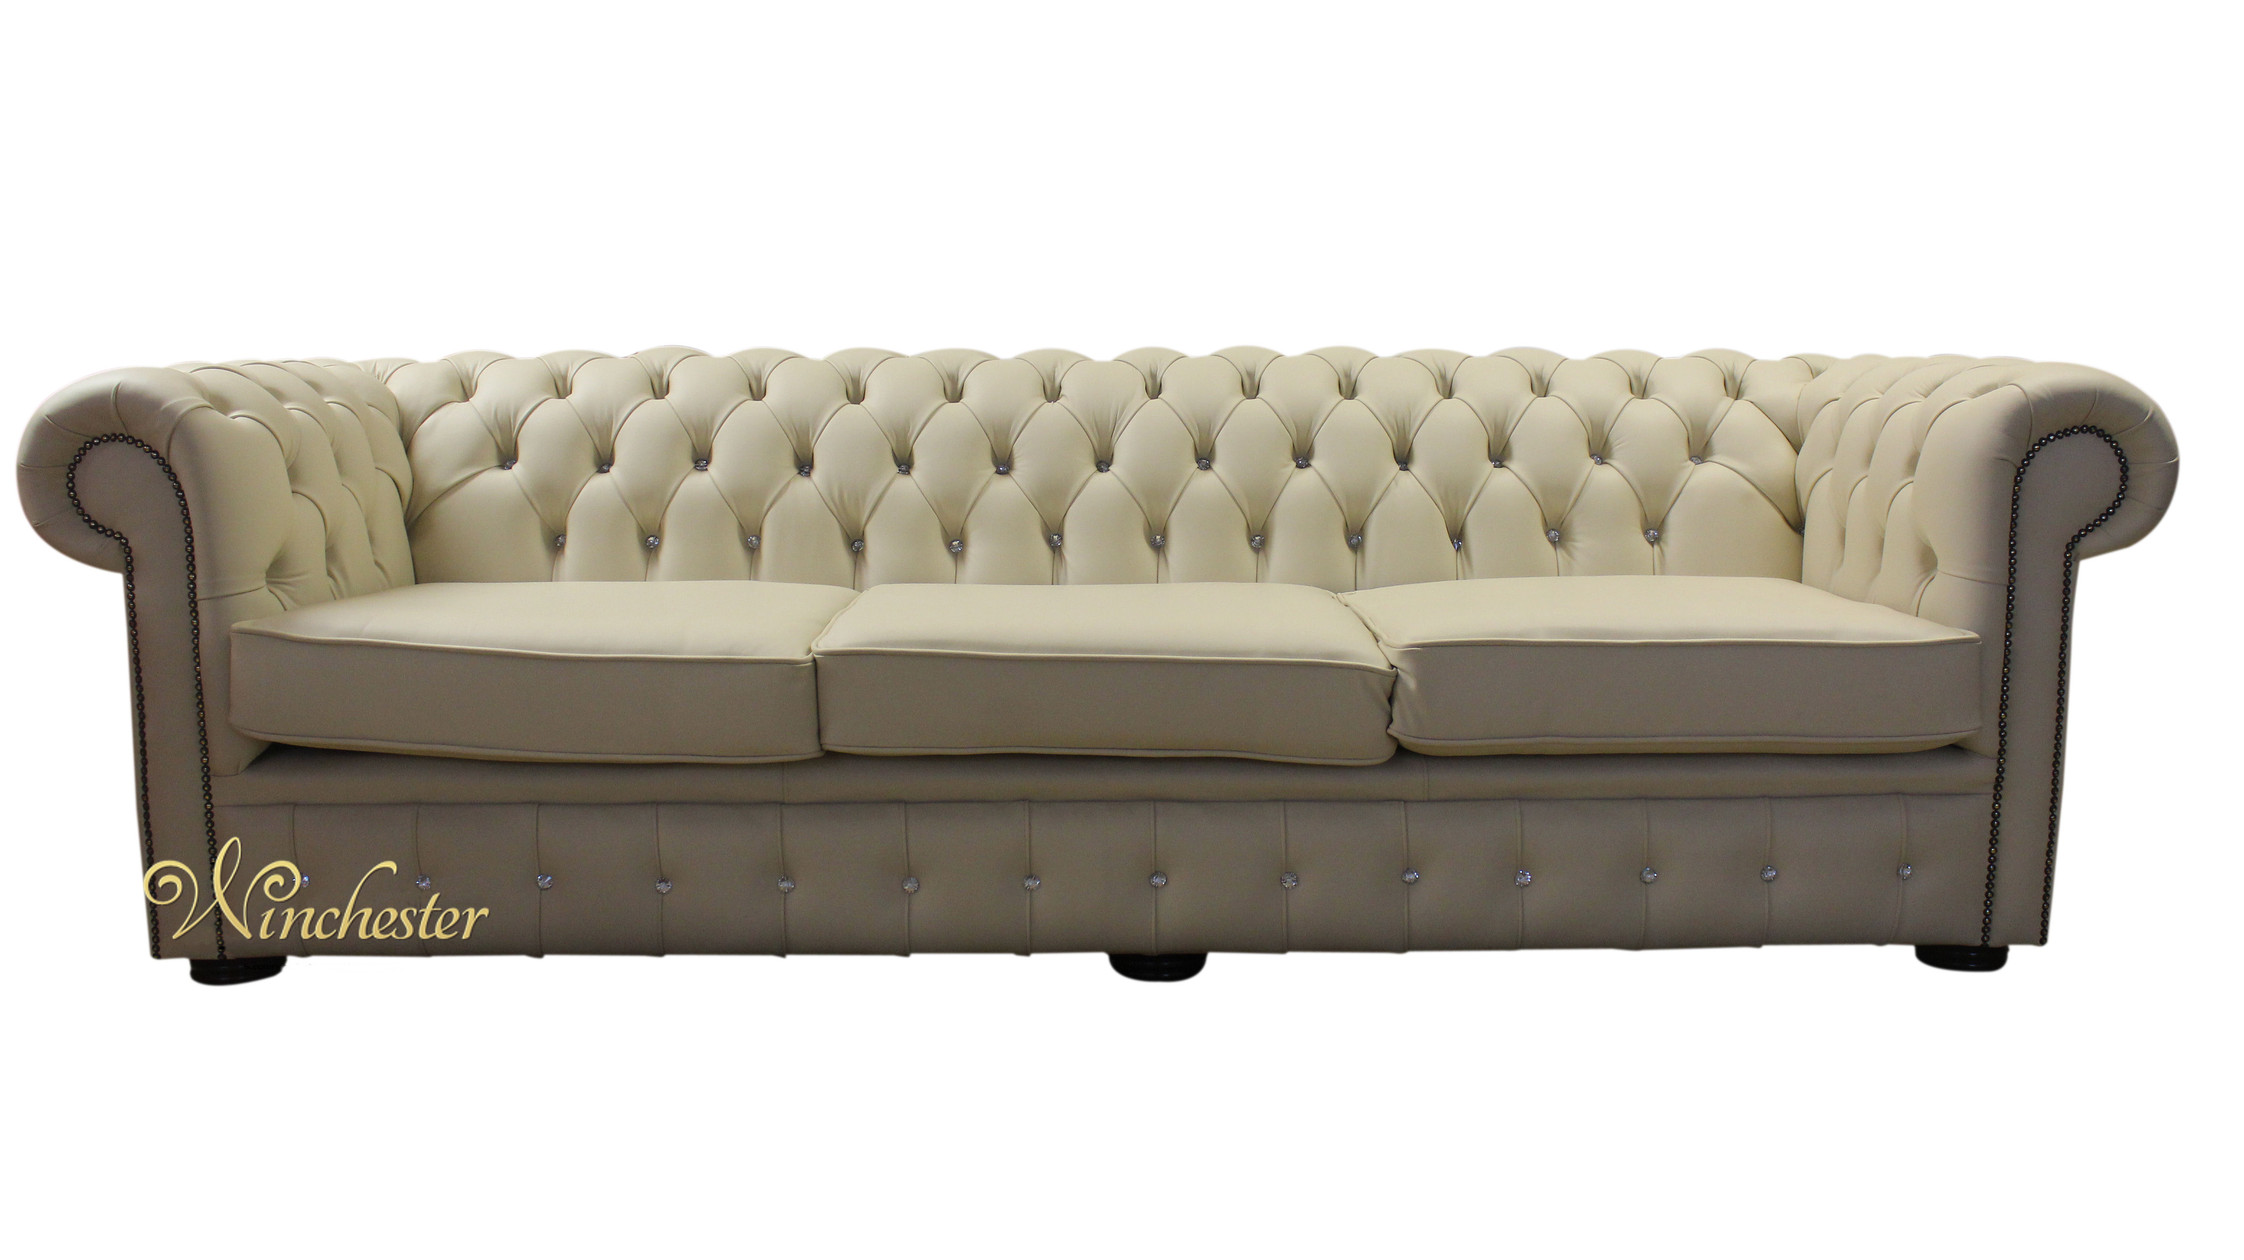 4 Seater Chesterfield Sofa Large 4 Seater Chesterfields Winchester